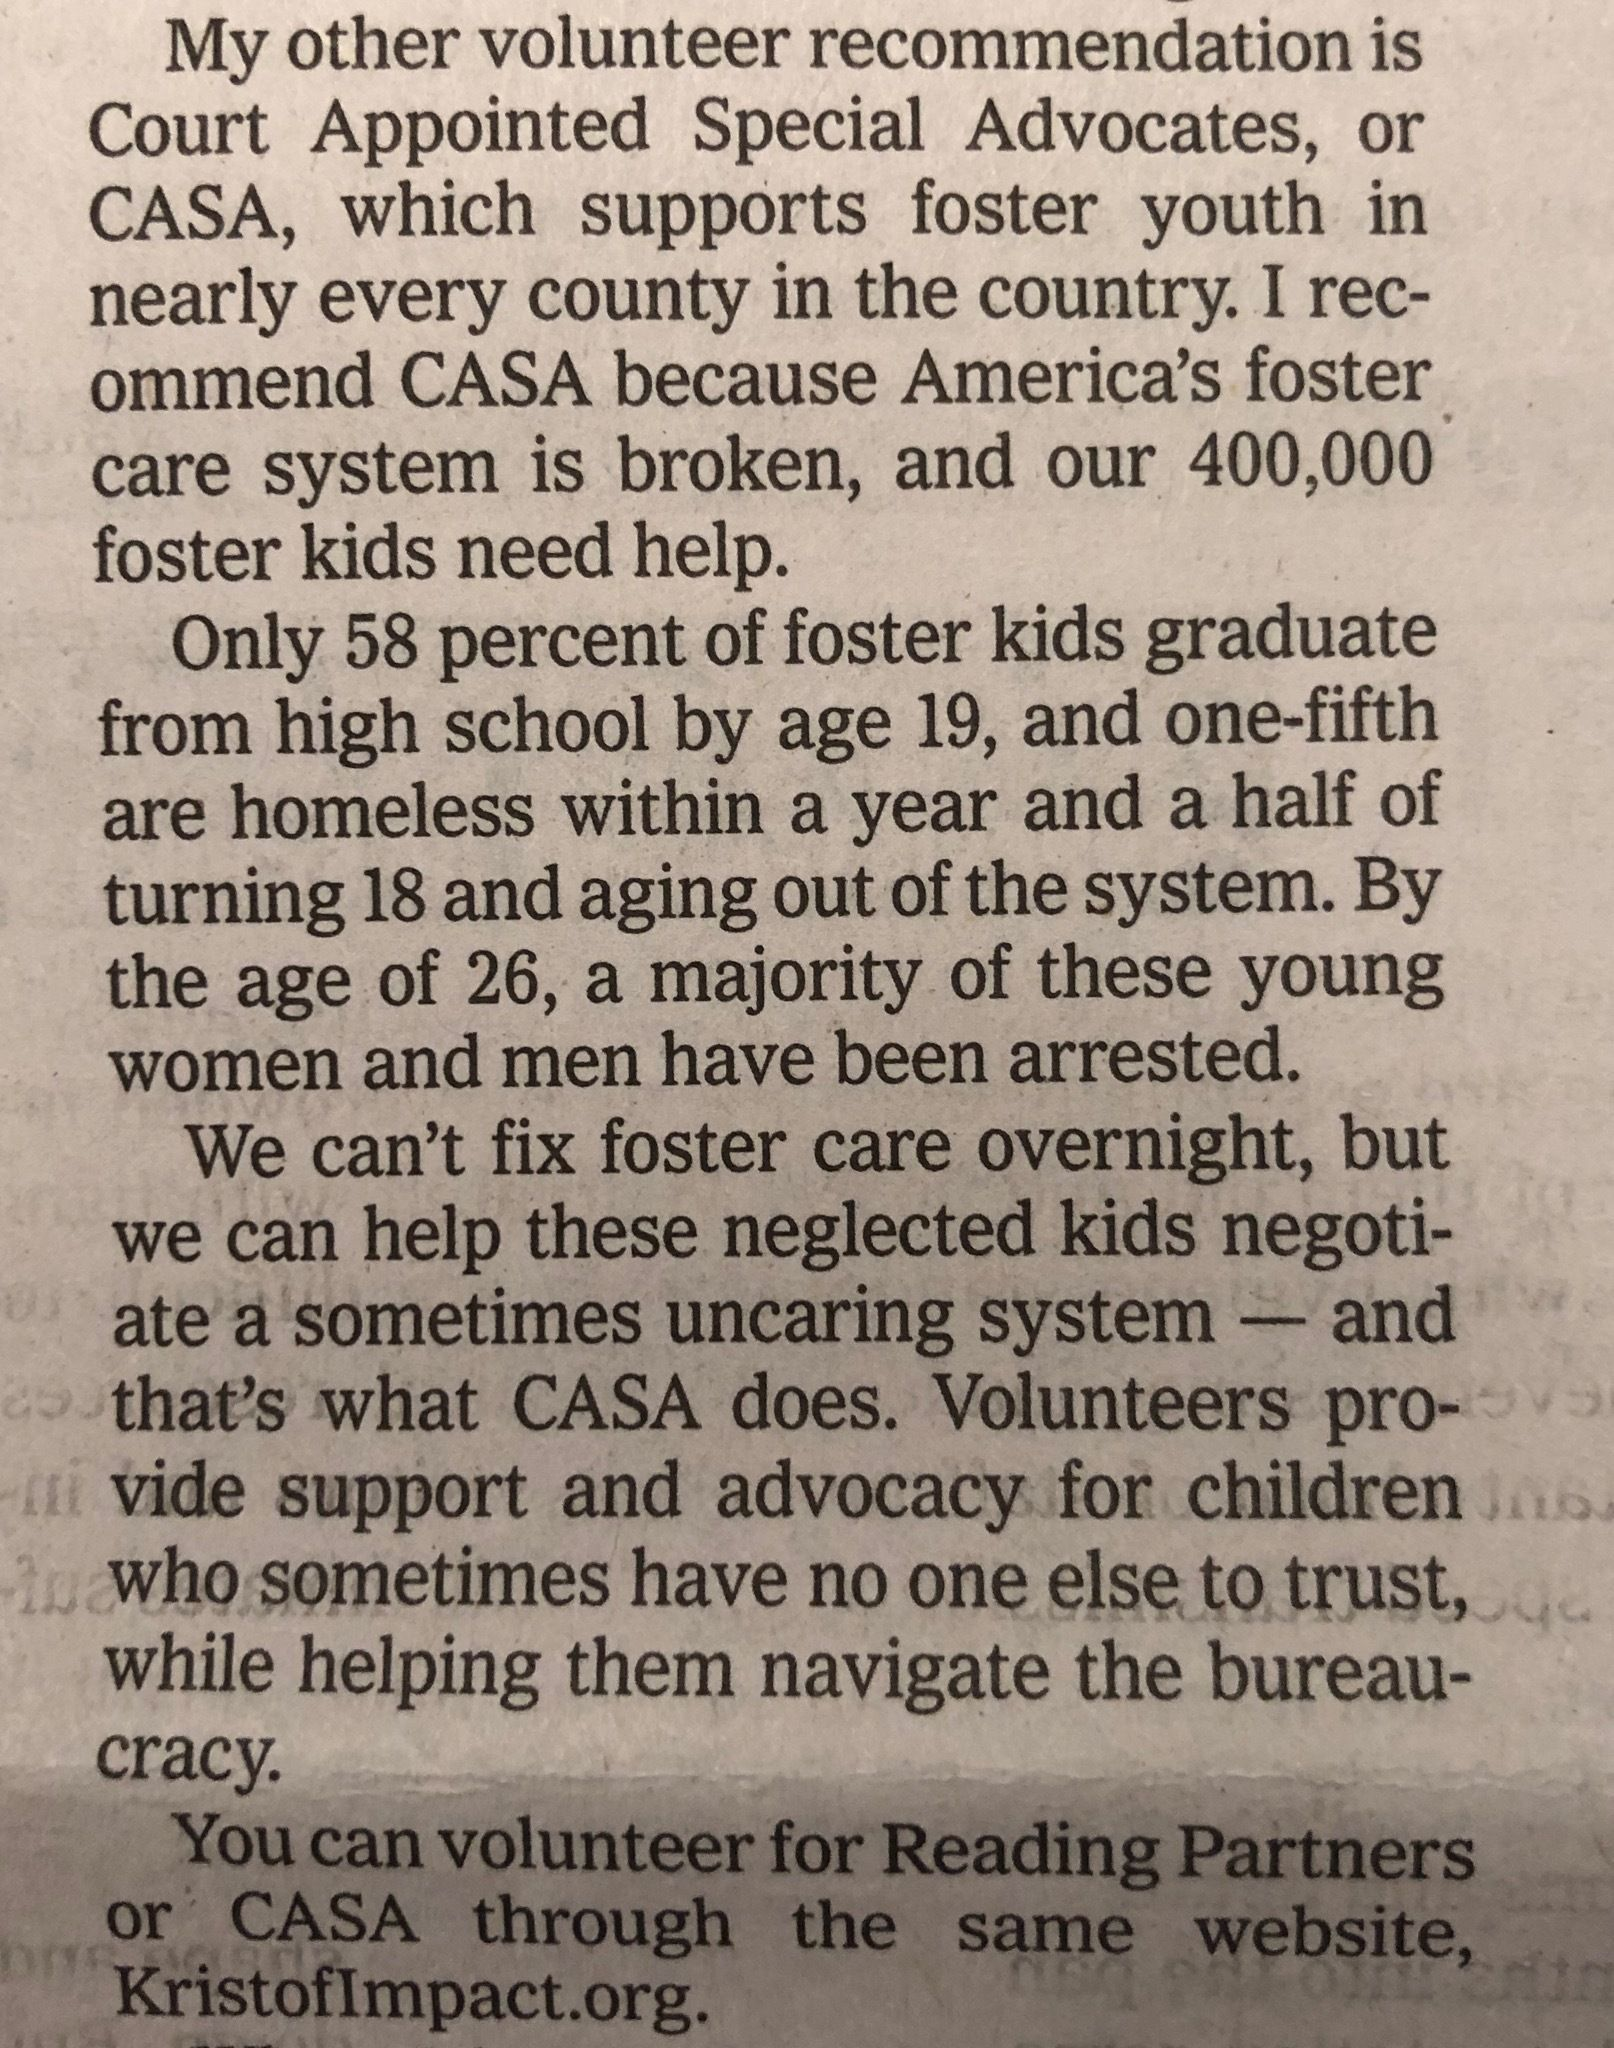 In New York Times column, Nicholas Kristof endorses CASA volunteer movement for children